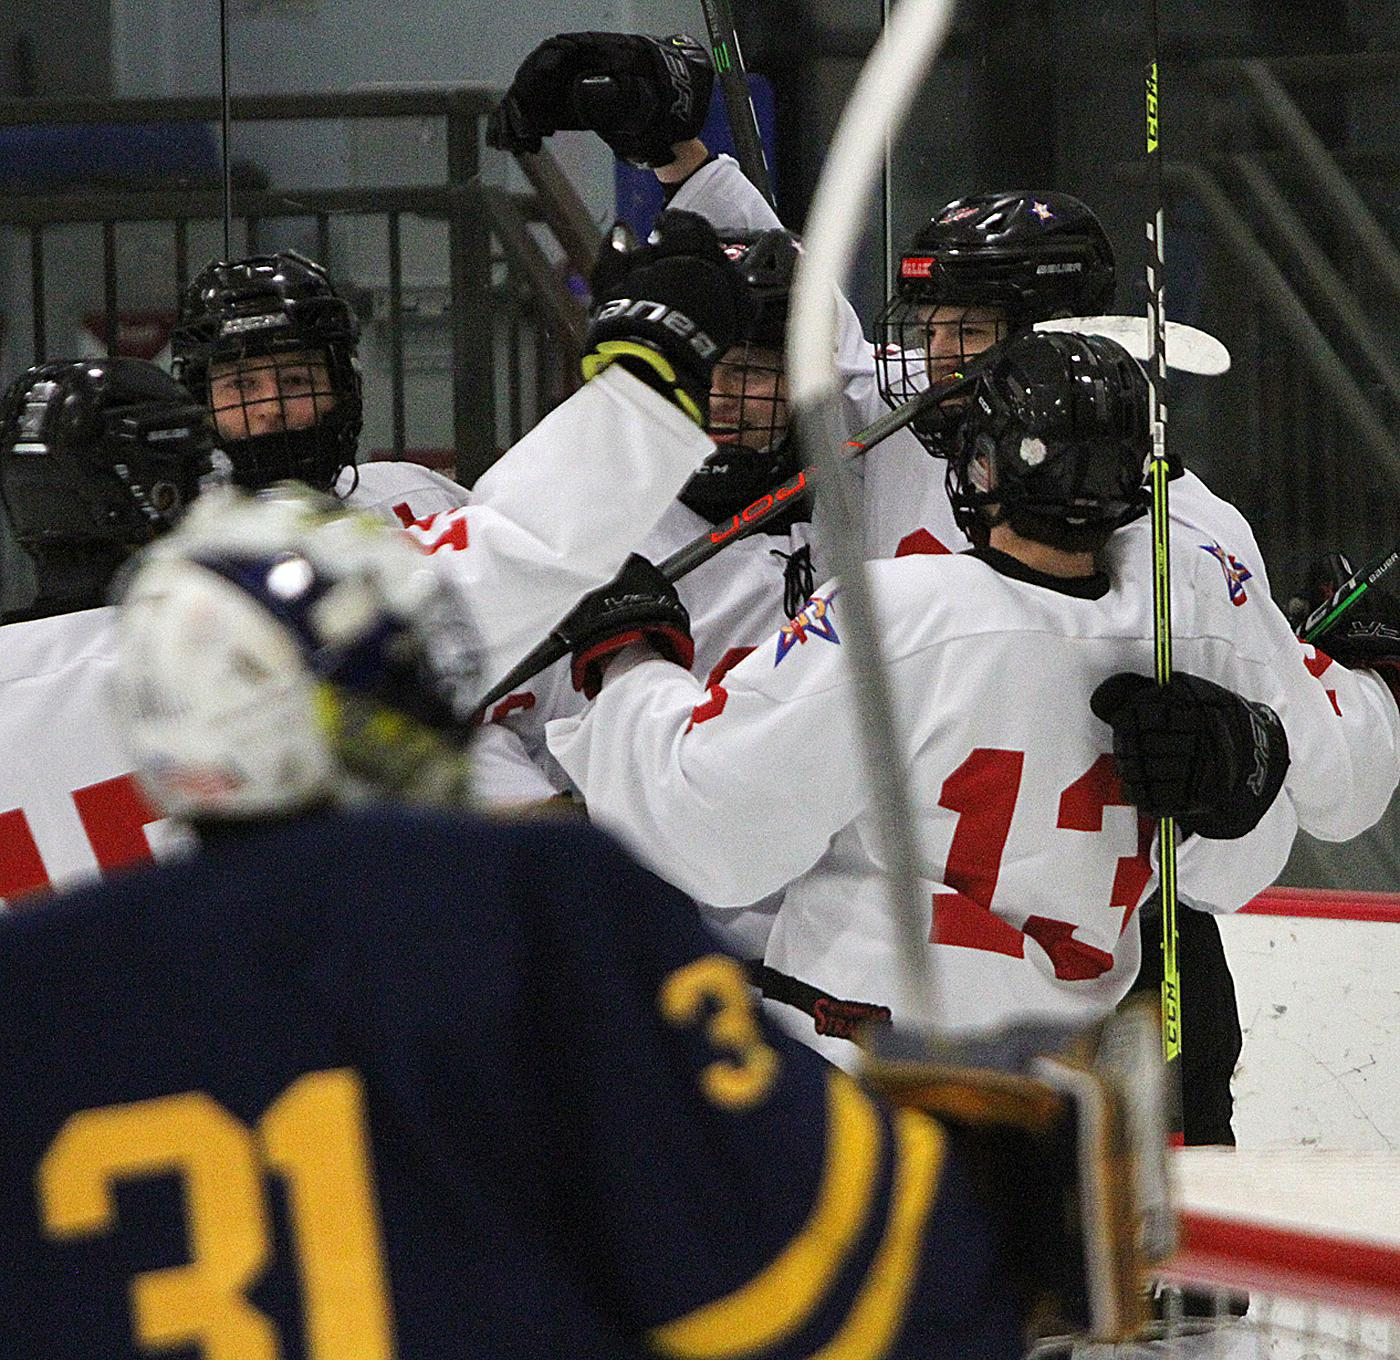 Gentry Academy celebrates a goal by Zach Reim during a three-goal burst over 1 minute, 6 seconds late in the first period. Reim and Bailey McGraw (13) each scored twice in the Stars' 8-2 defeat of Breck. Photo by Drew Herron, SportsEngine